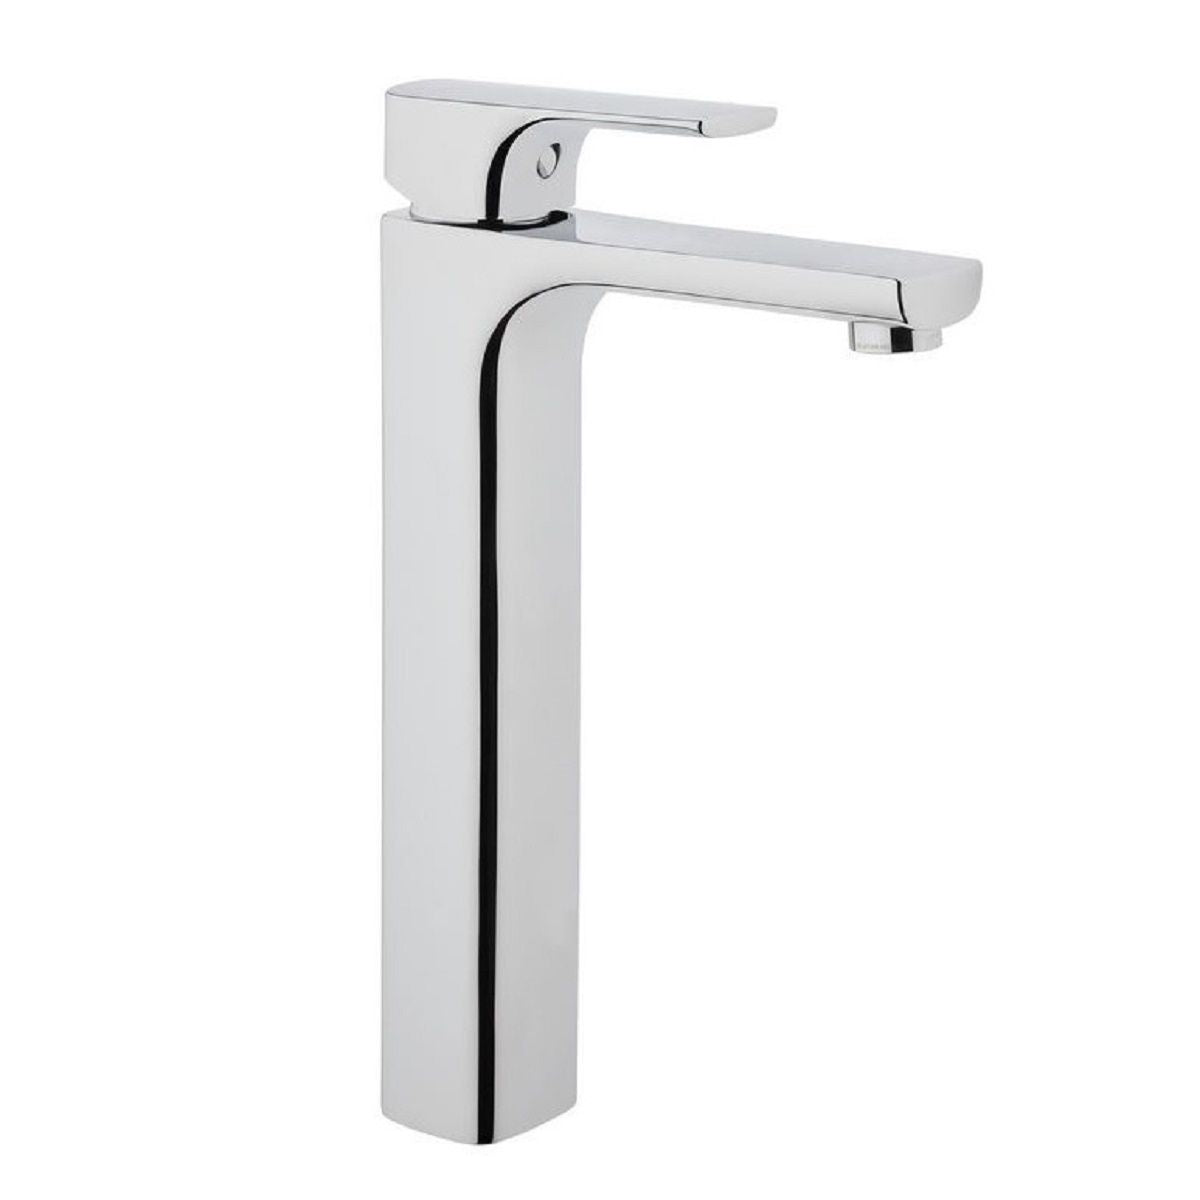 VitrA Sento Tall Basin Mixer